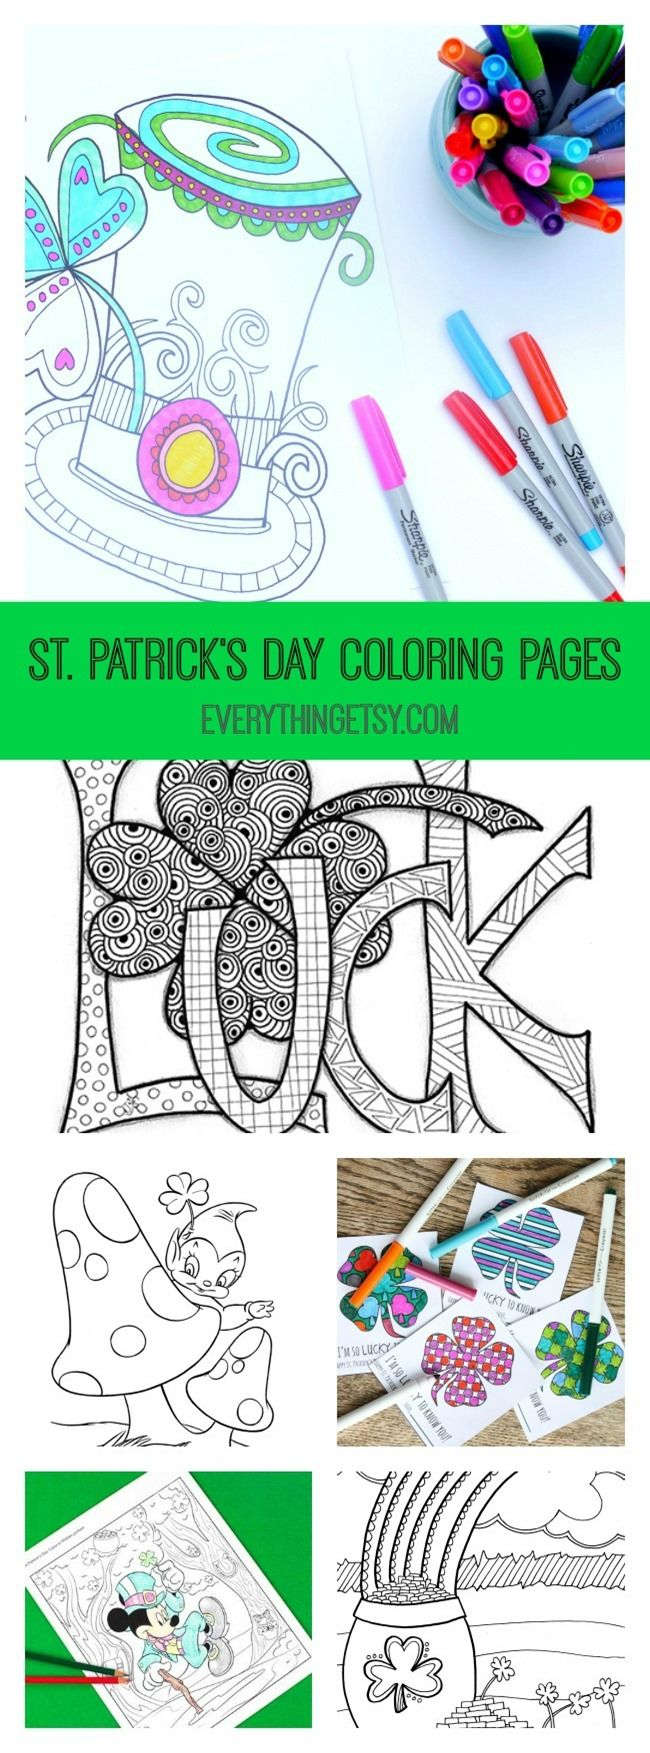 Mobile shimmer and shine coloring games coloring pages ausmalbilder - 12 St Patrick S Day Printable Coloring Pages For Adults Kids